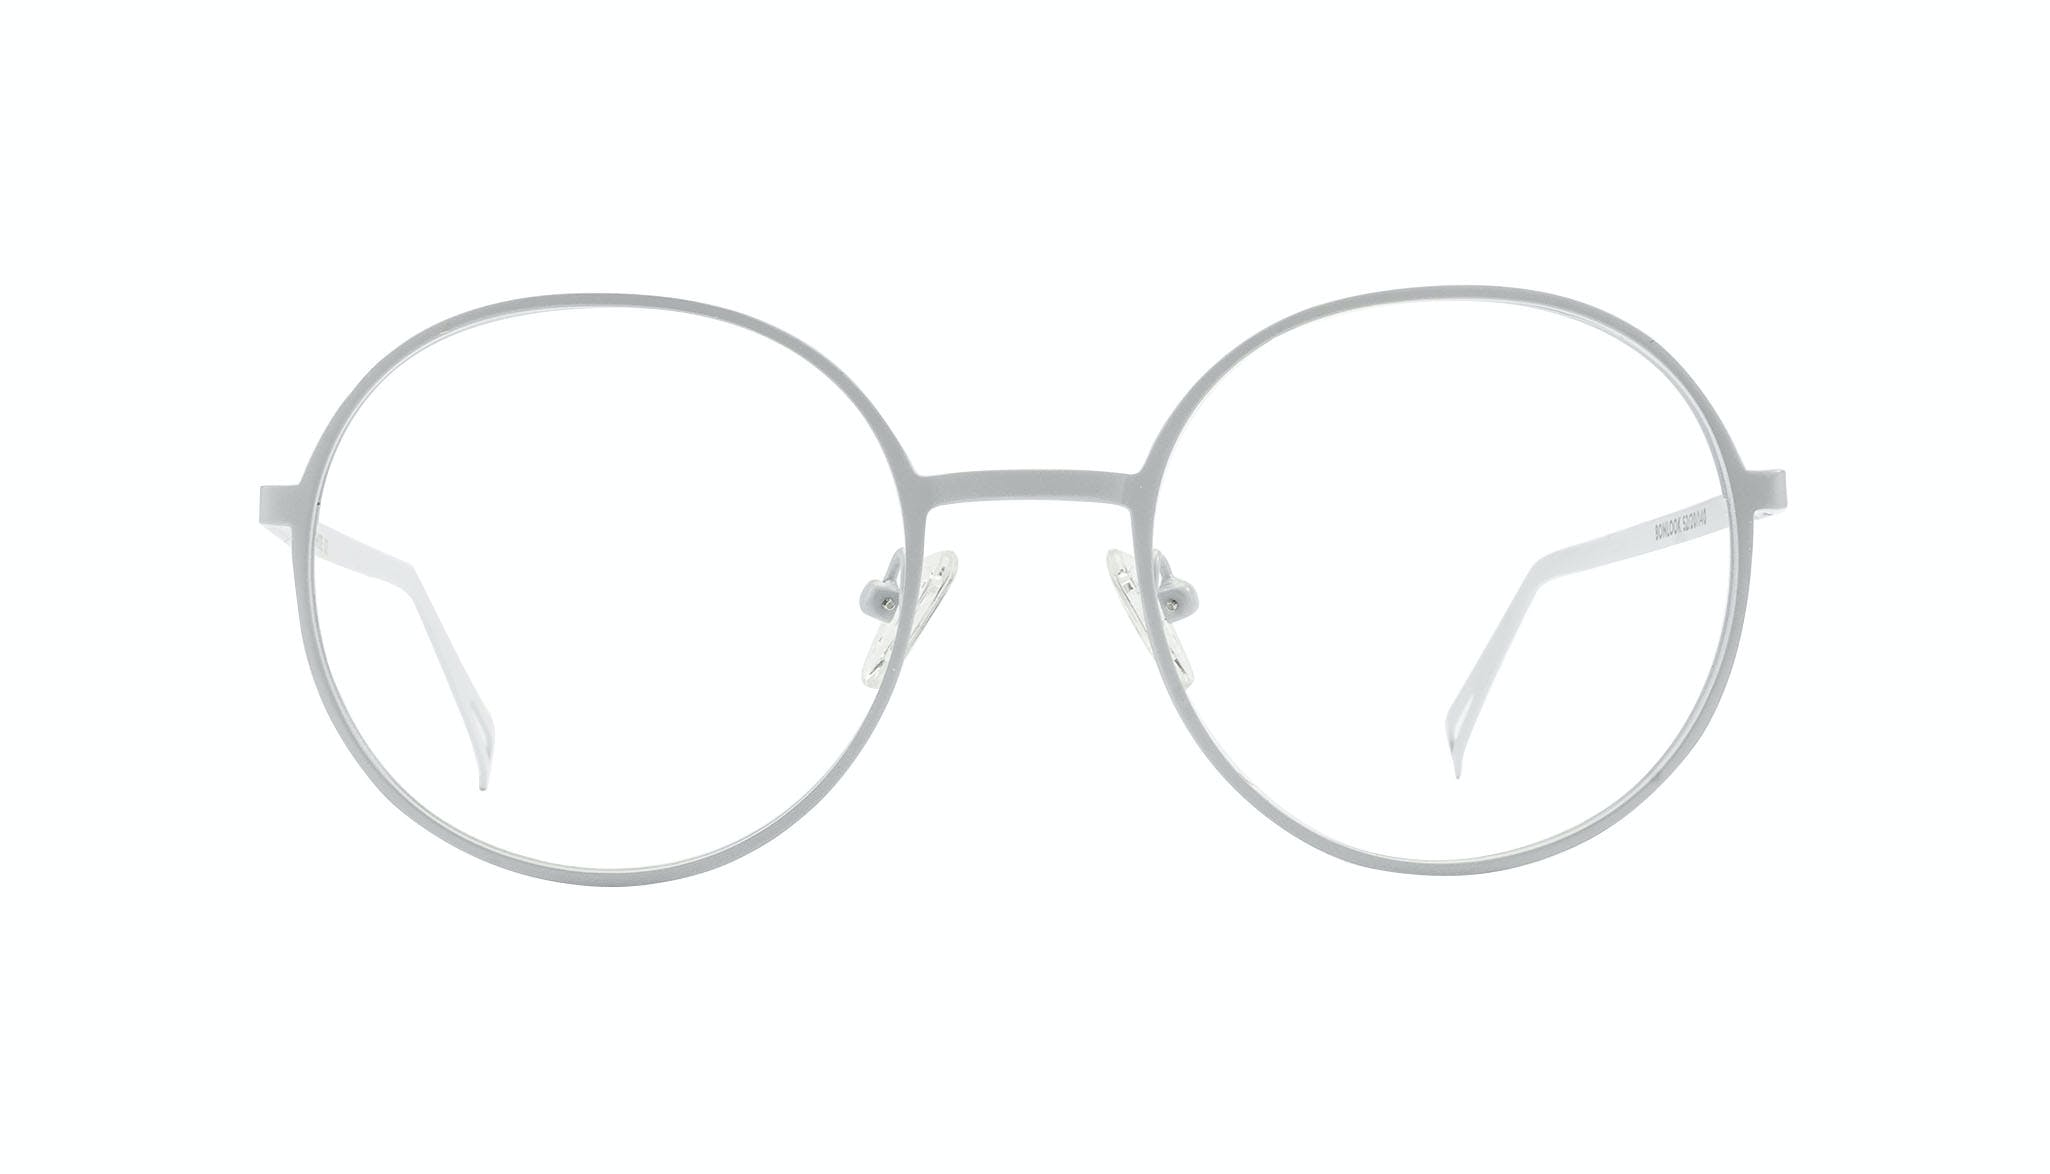 Affordable Fashion Glasses Round Eyeglasses Men Women Varna White